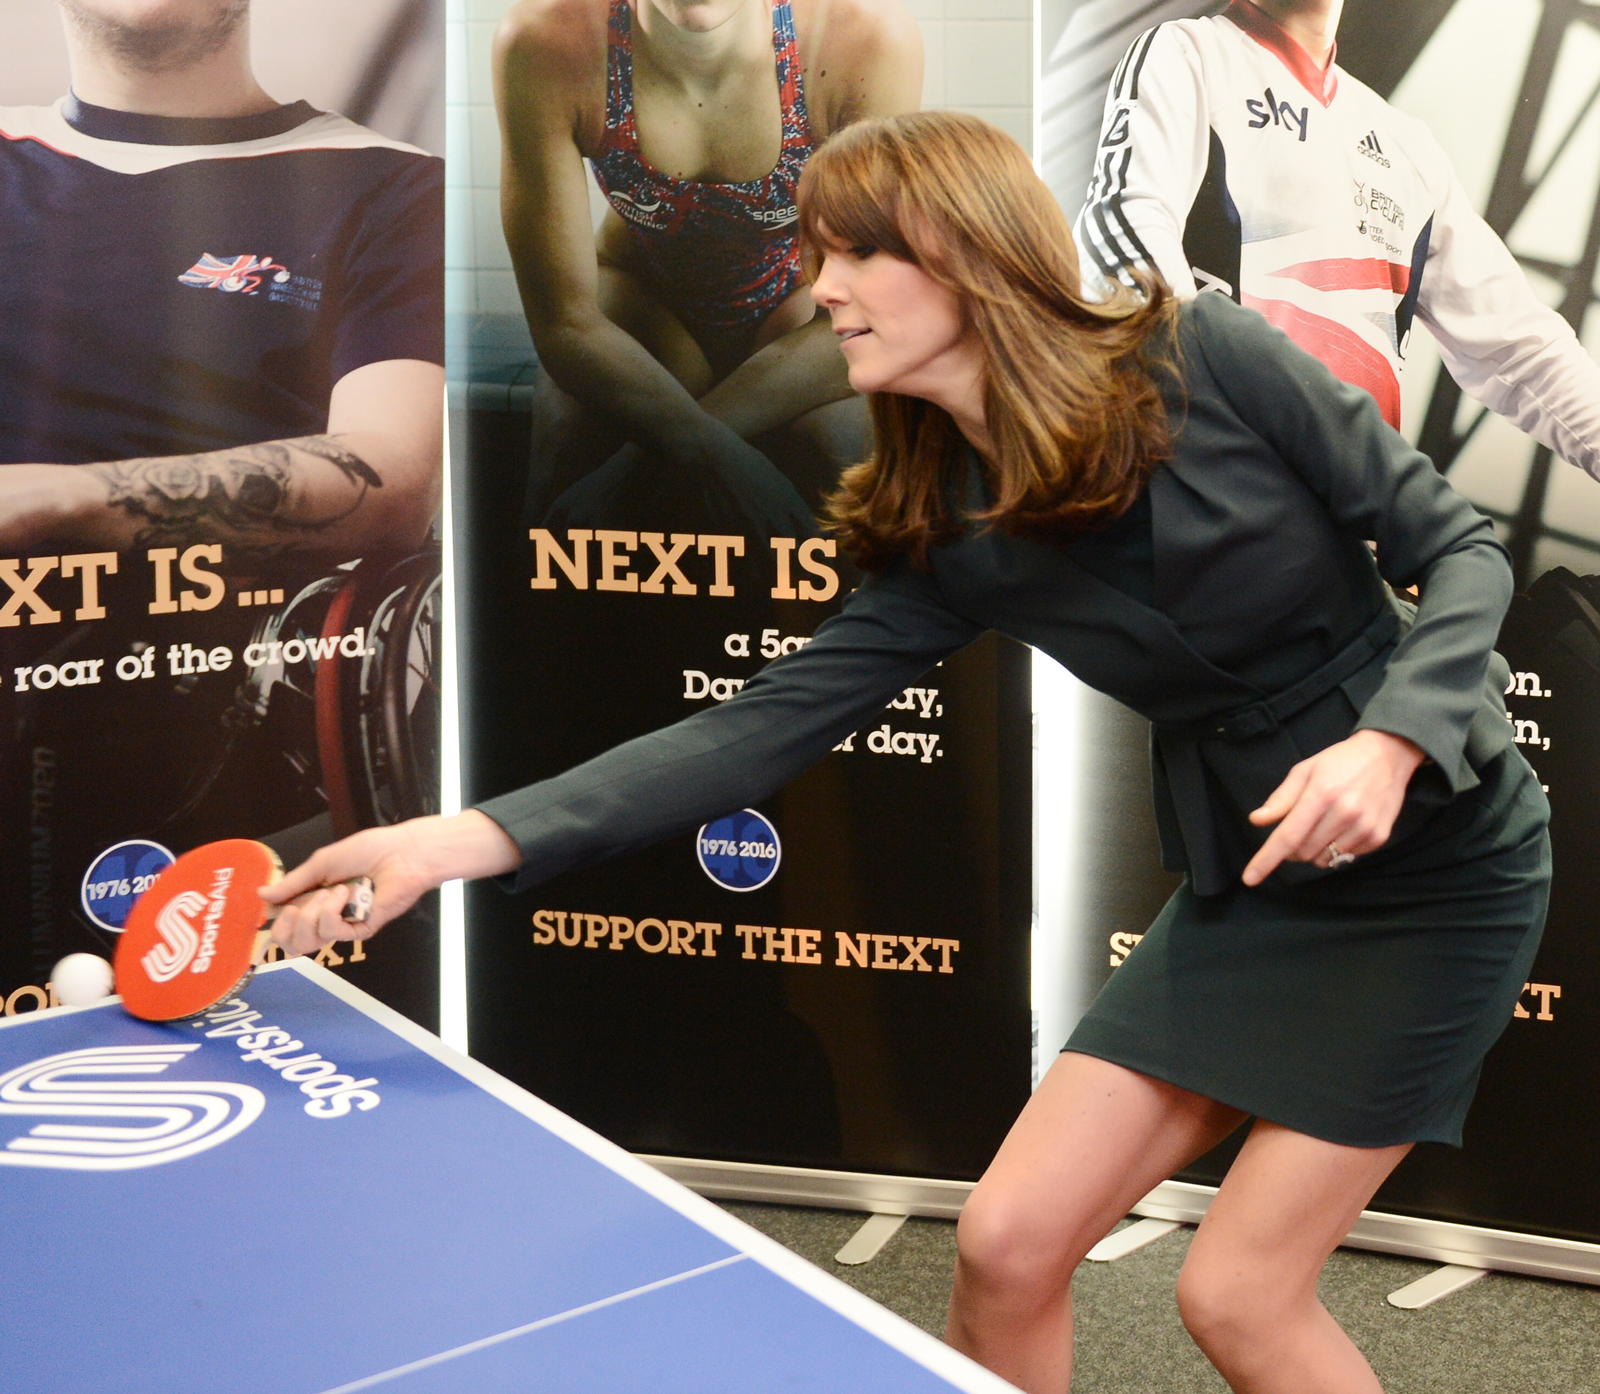 Impeccable suiting + ping-pong skills? Aces.